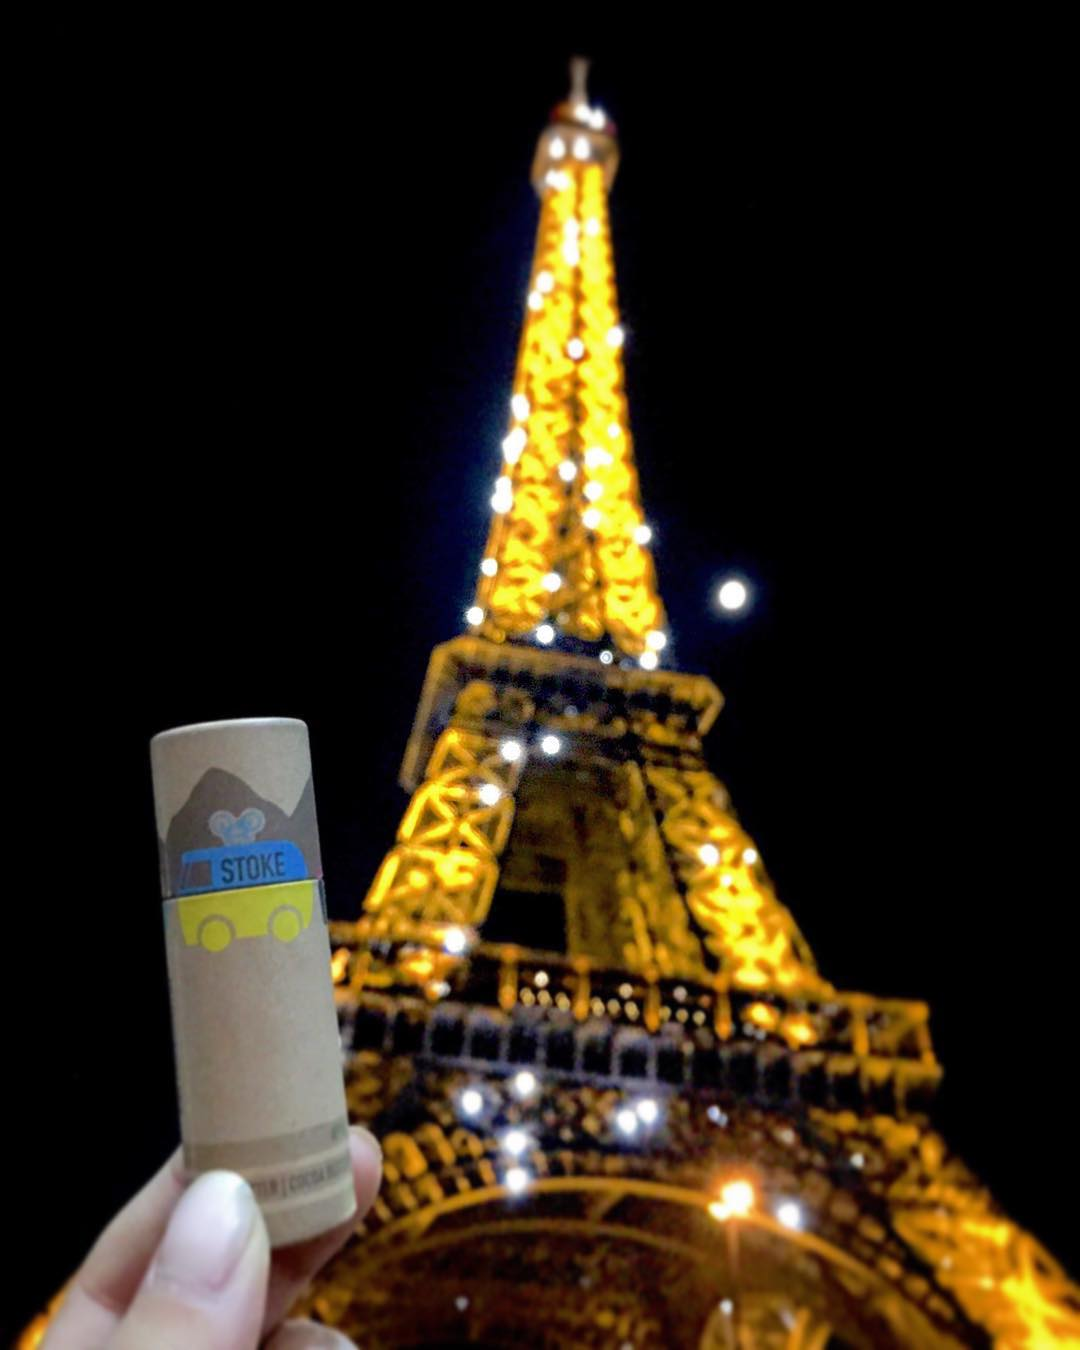 Whether you're at the top of Mt. Everest or the beautiful streets of Paris, Stokie will keep your lips and face protected and your stoke completely ↩️'t ⬆️.